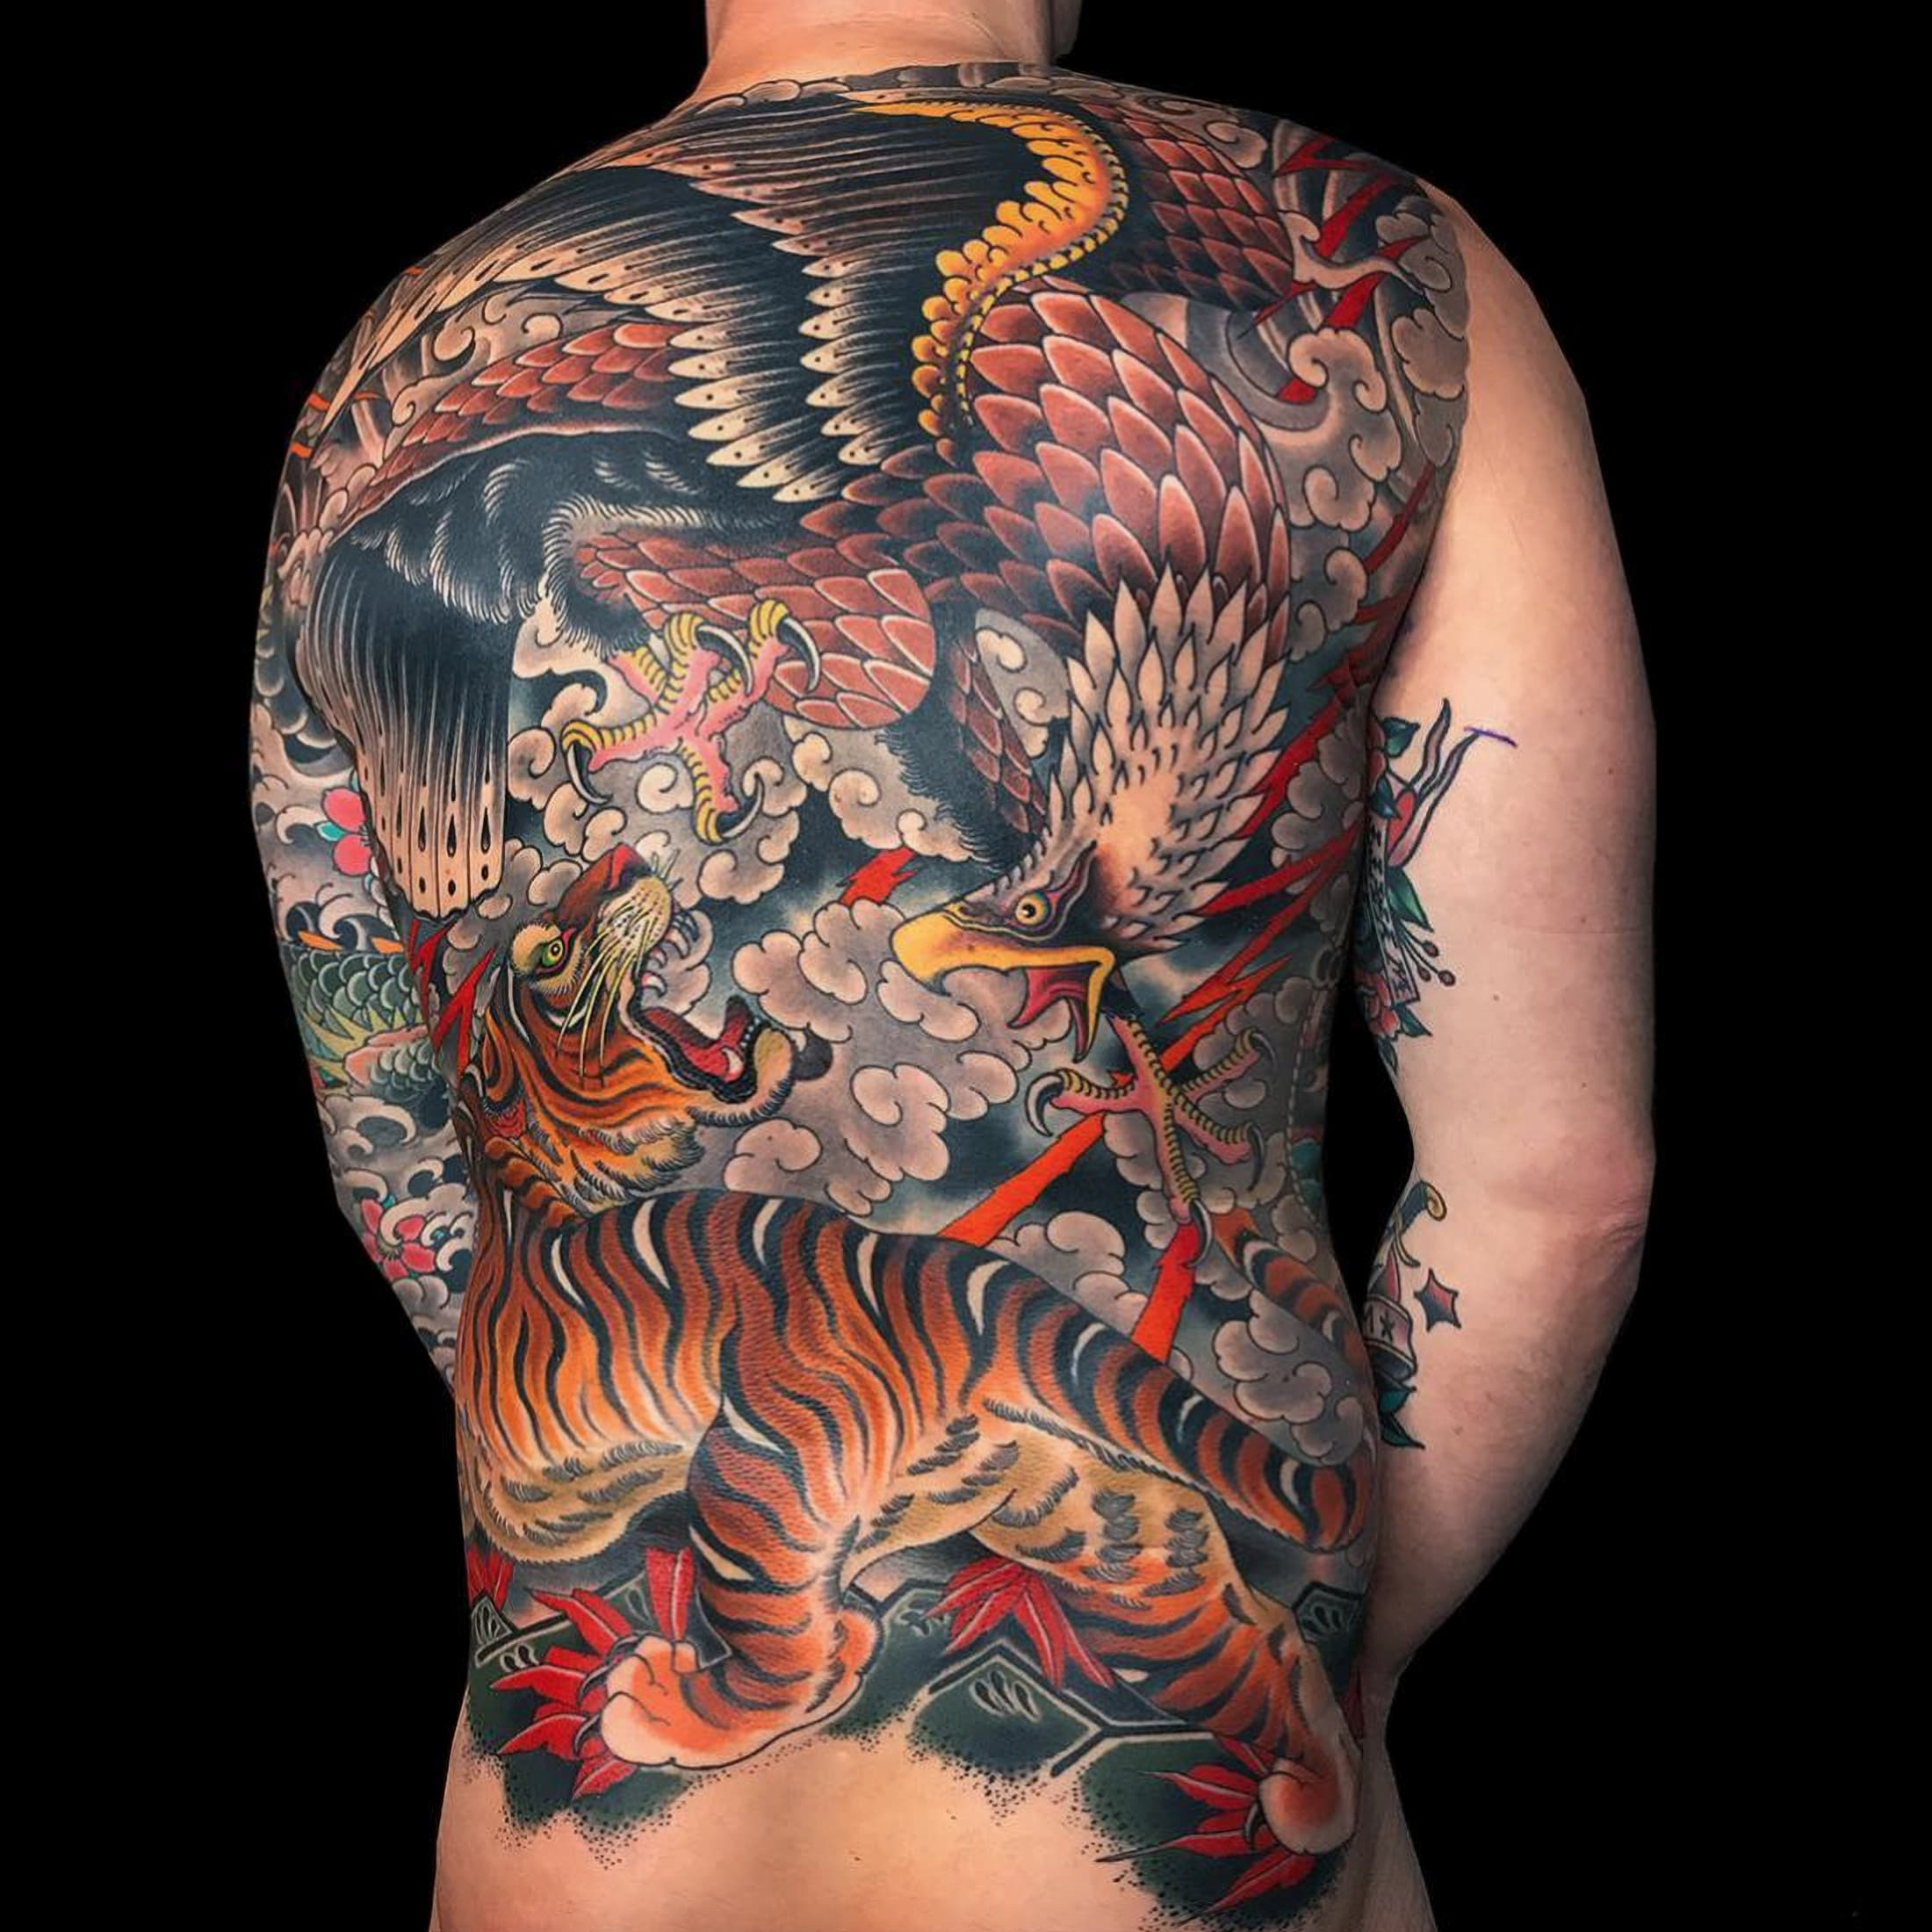 Japanese Tattoos: History, Imagery, Legality and Artists